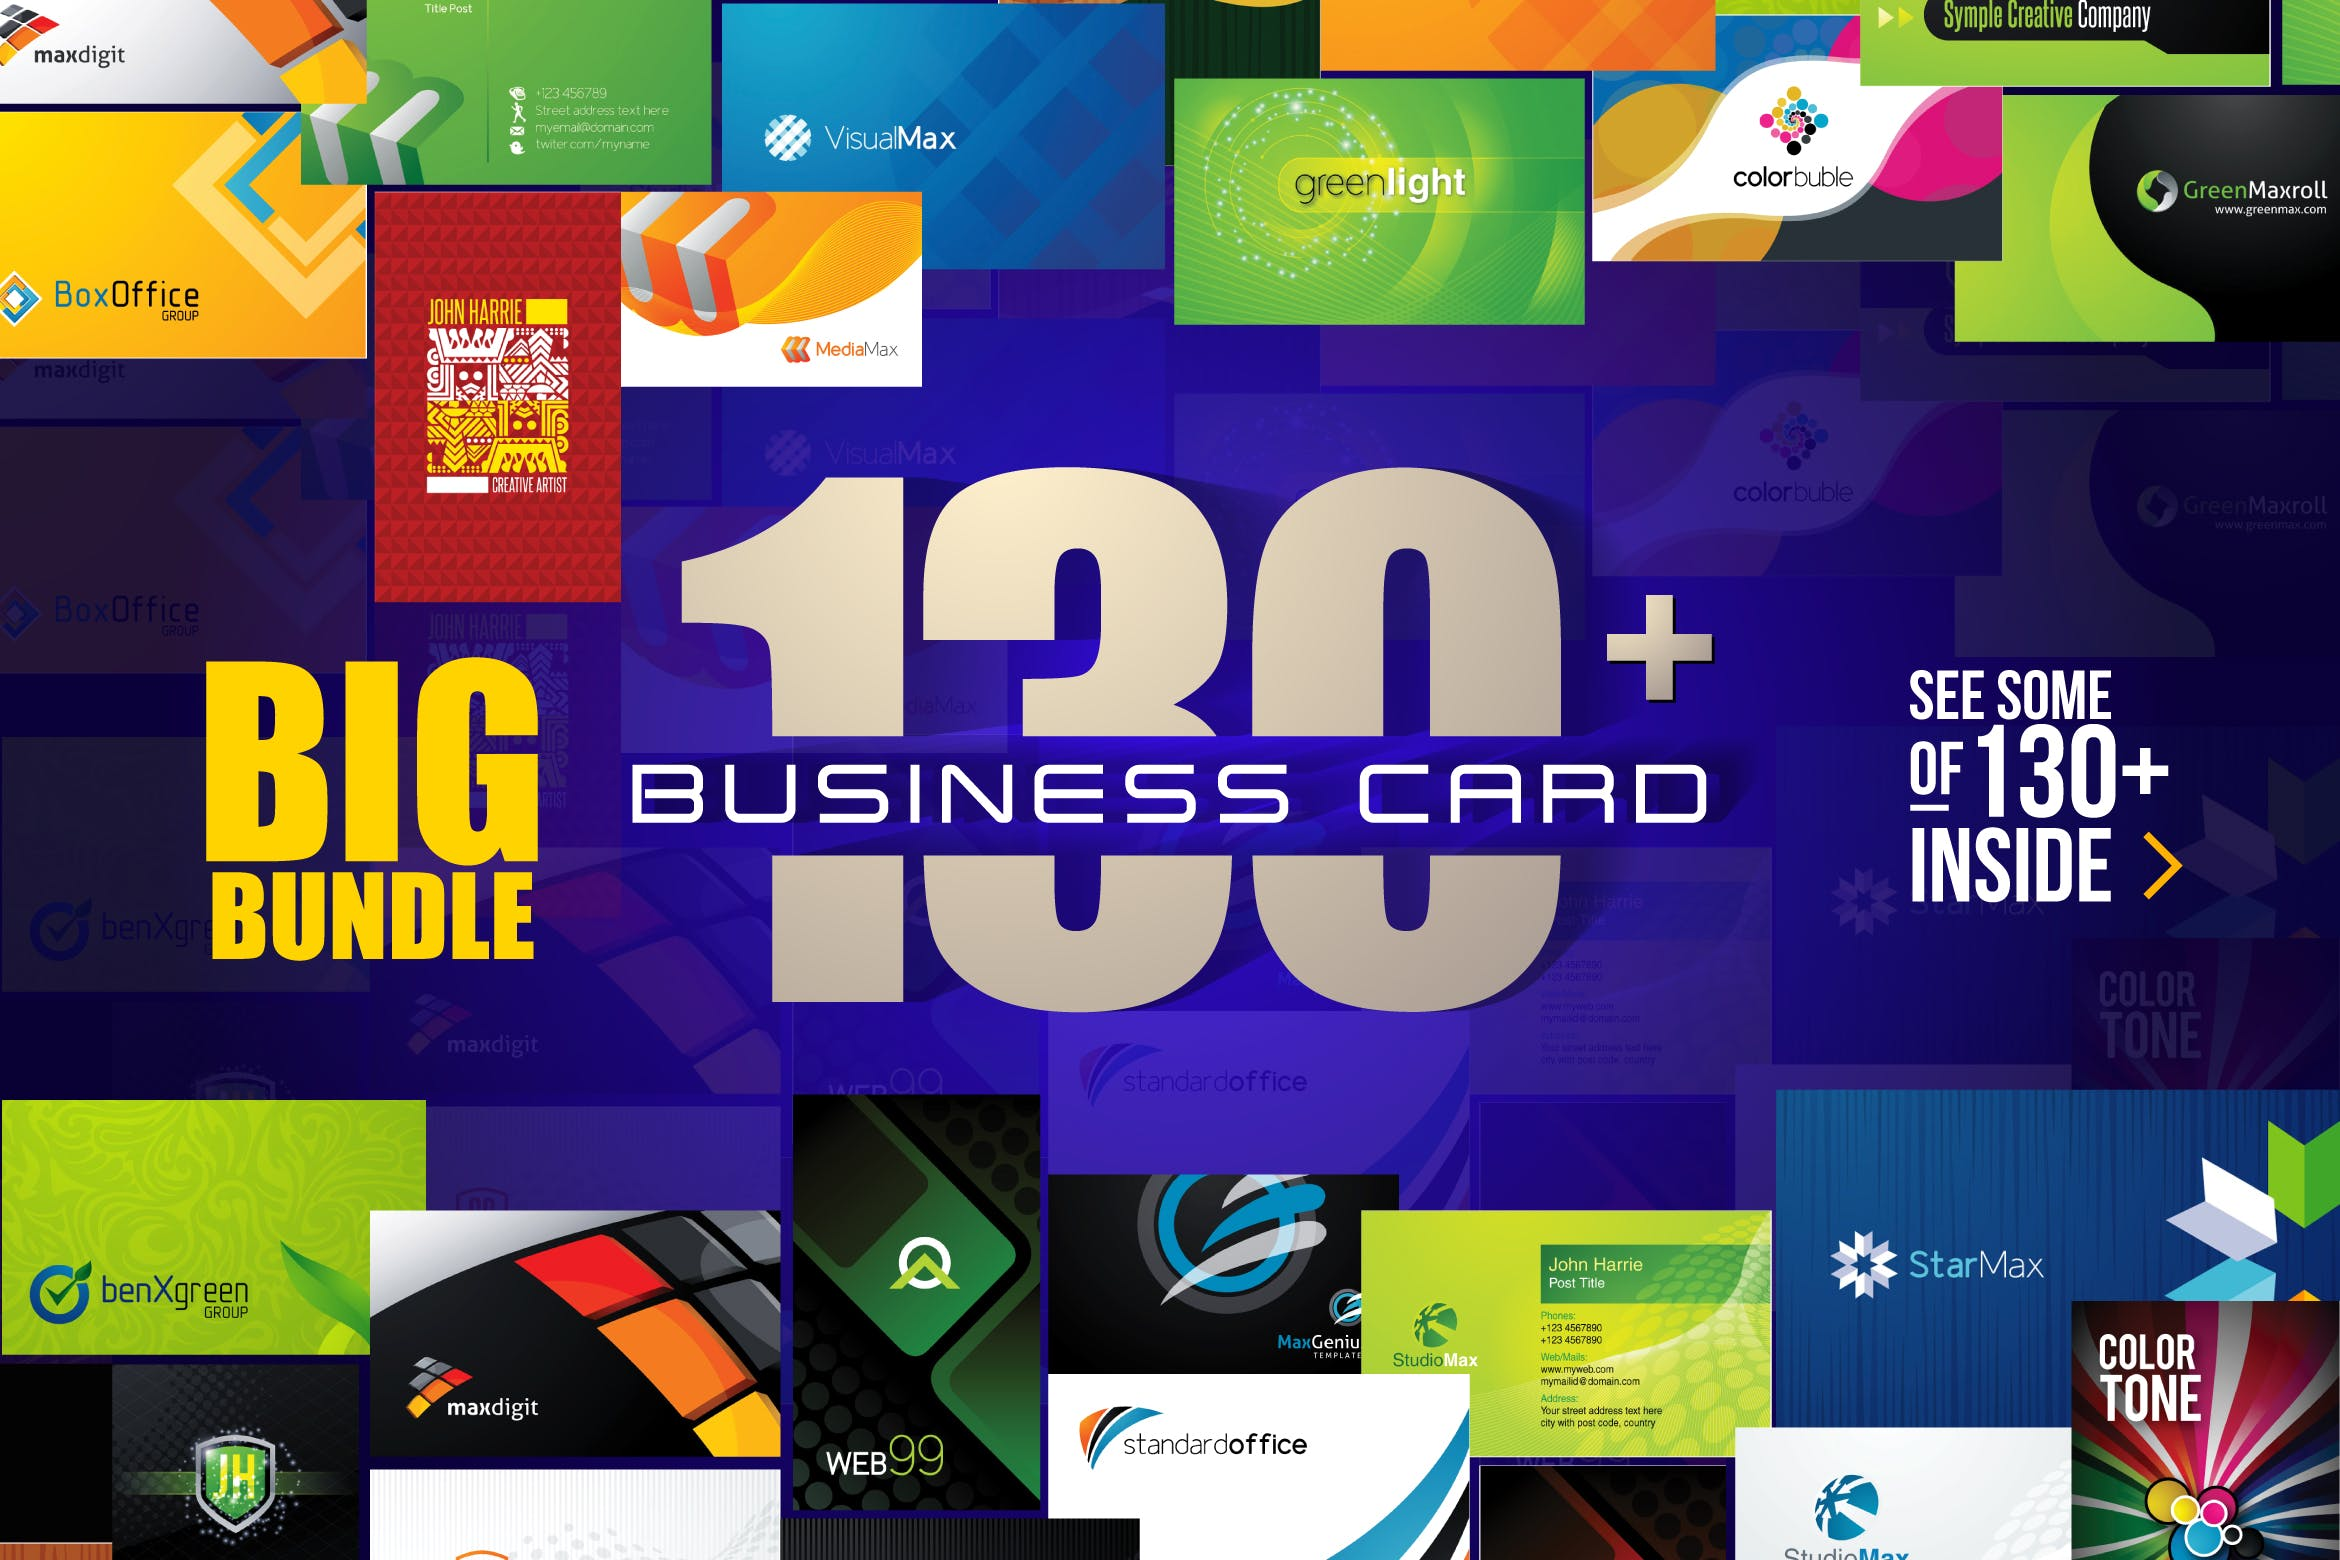 Big Bundle Business Card 2017